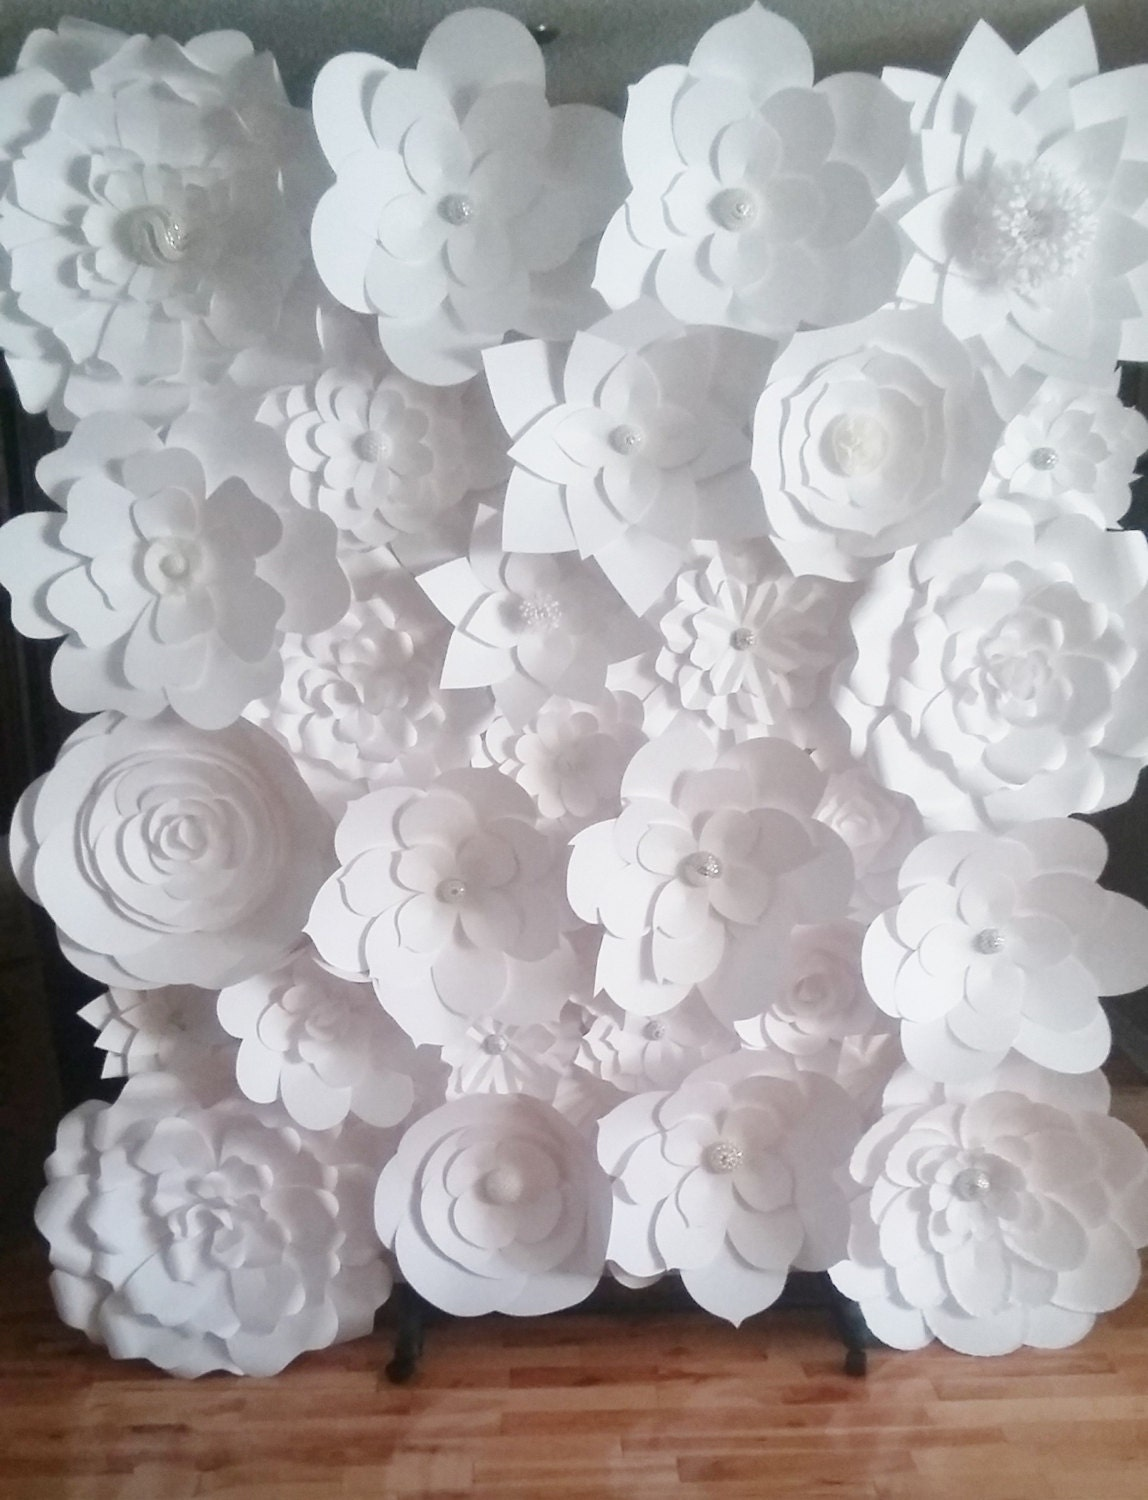 Diy paper flower wall the knot report0 reply mightylinksfo